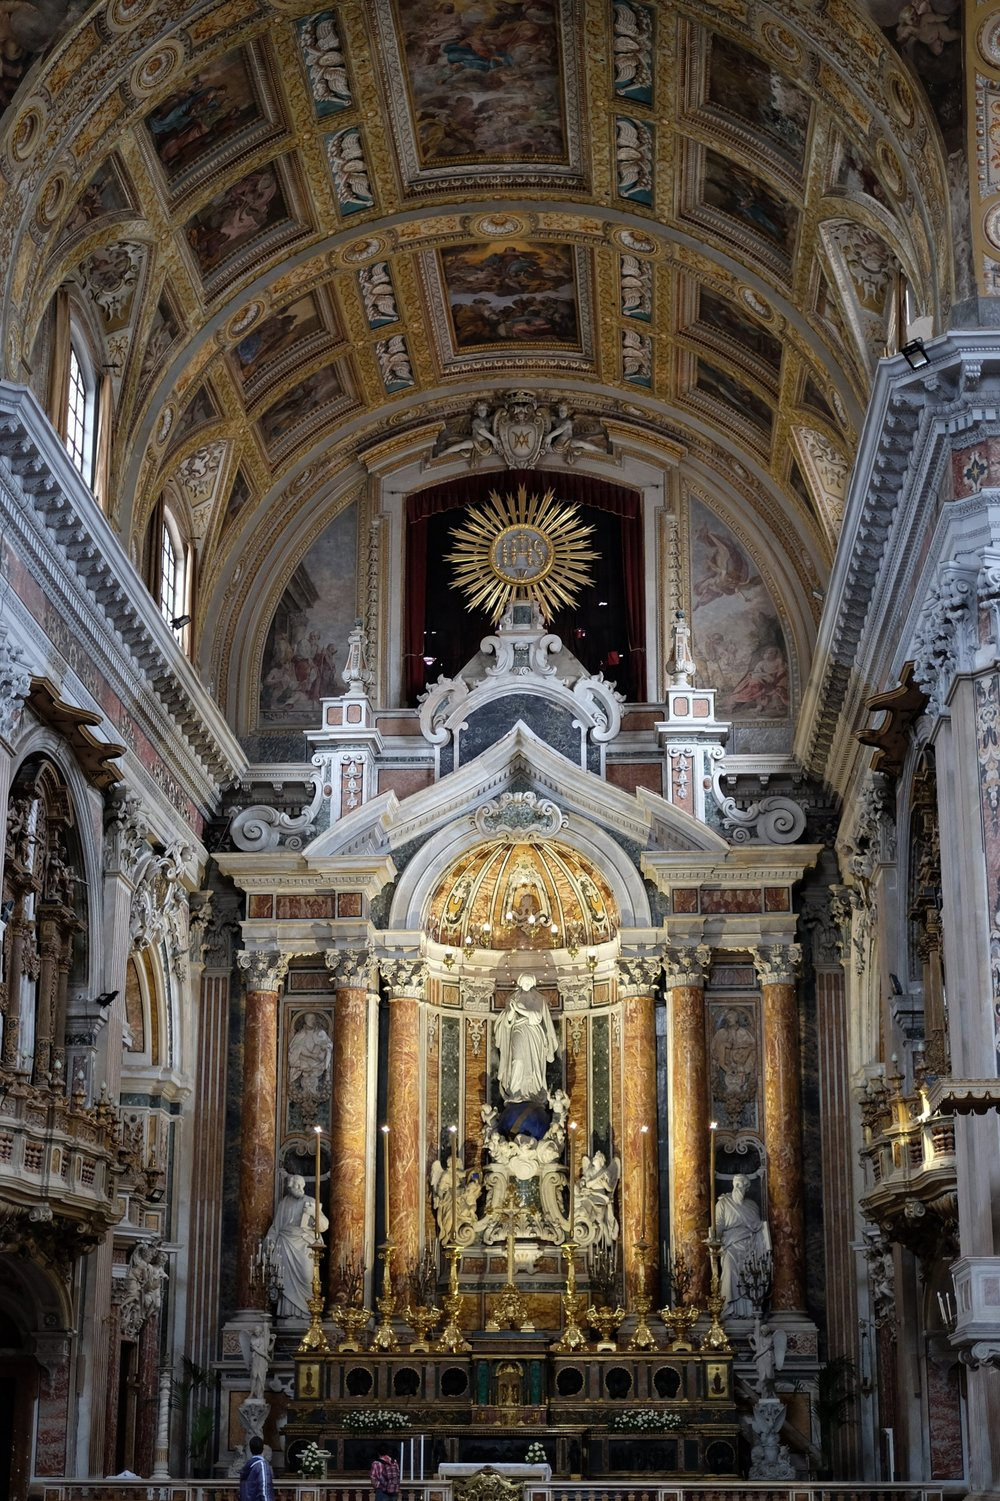 The high altar with the sculptures of  The Madonna and Saint Peter and Saint Paul  by Antonio Busciolano, dated 1857-59.  The ceiling-dome is decorated with paintings by Massimo Stanzione.